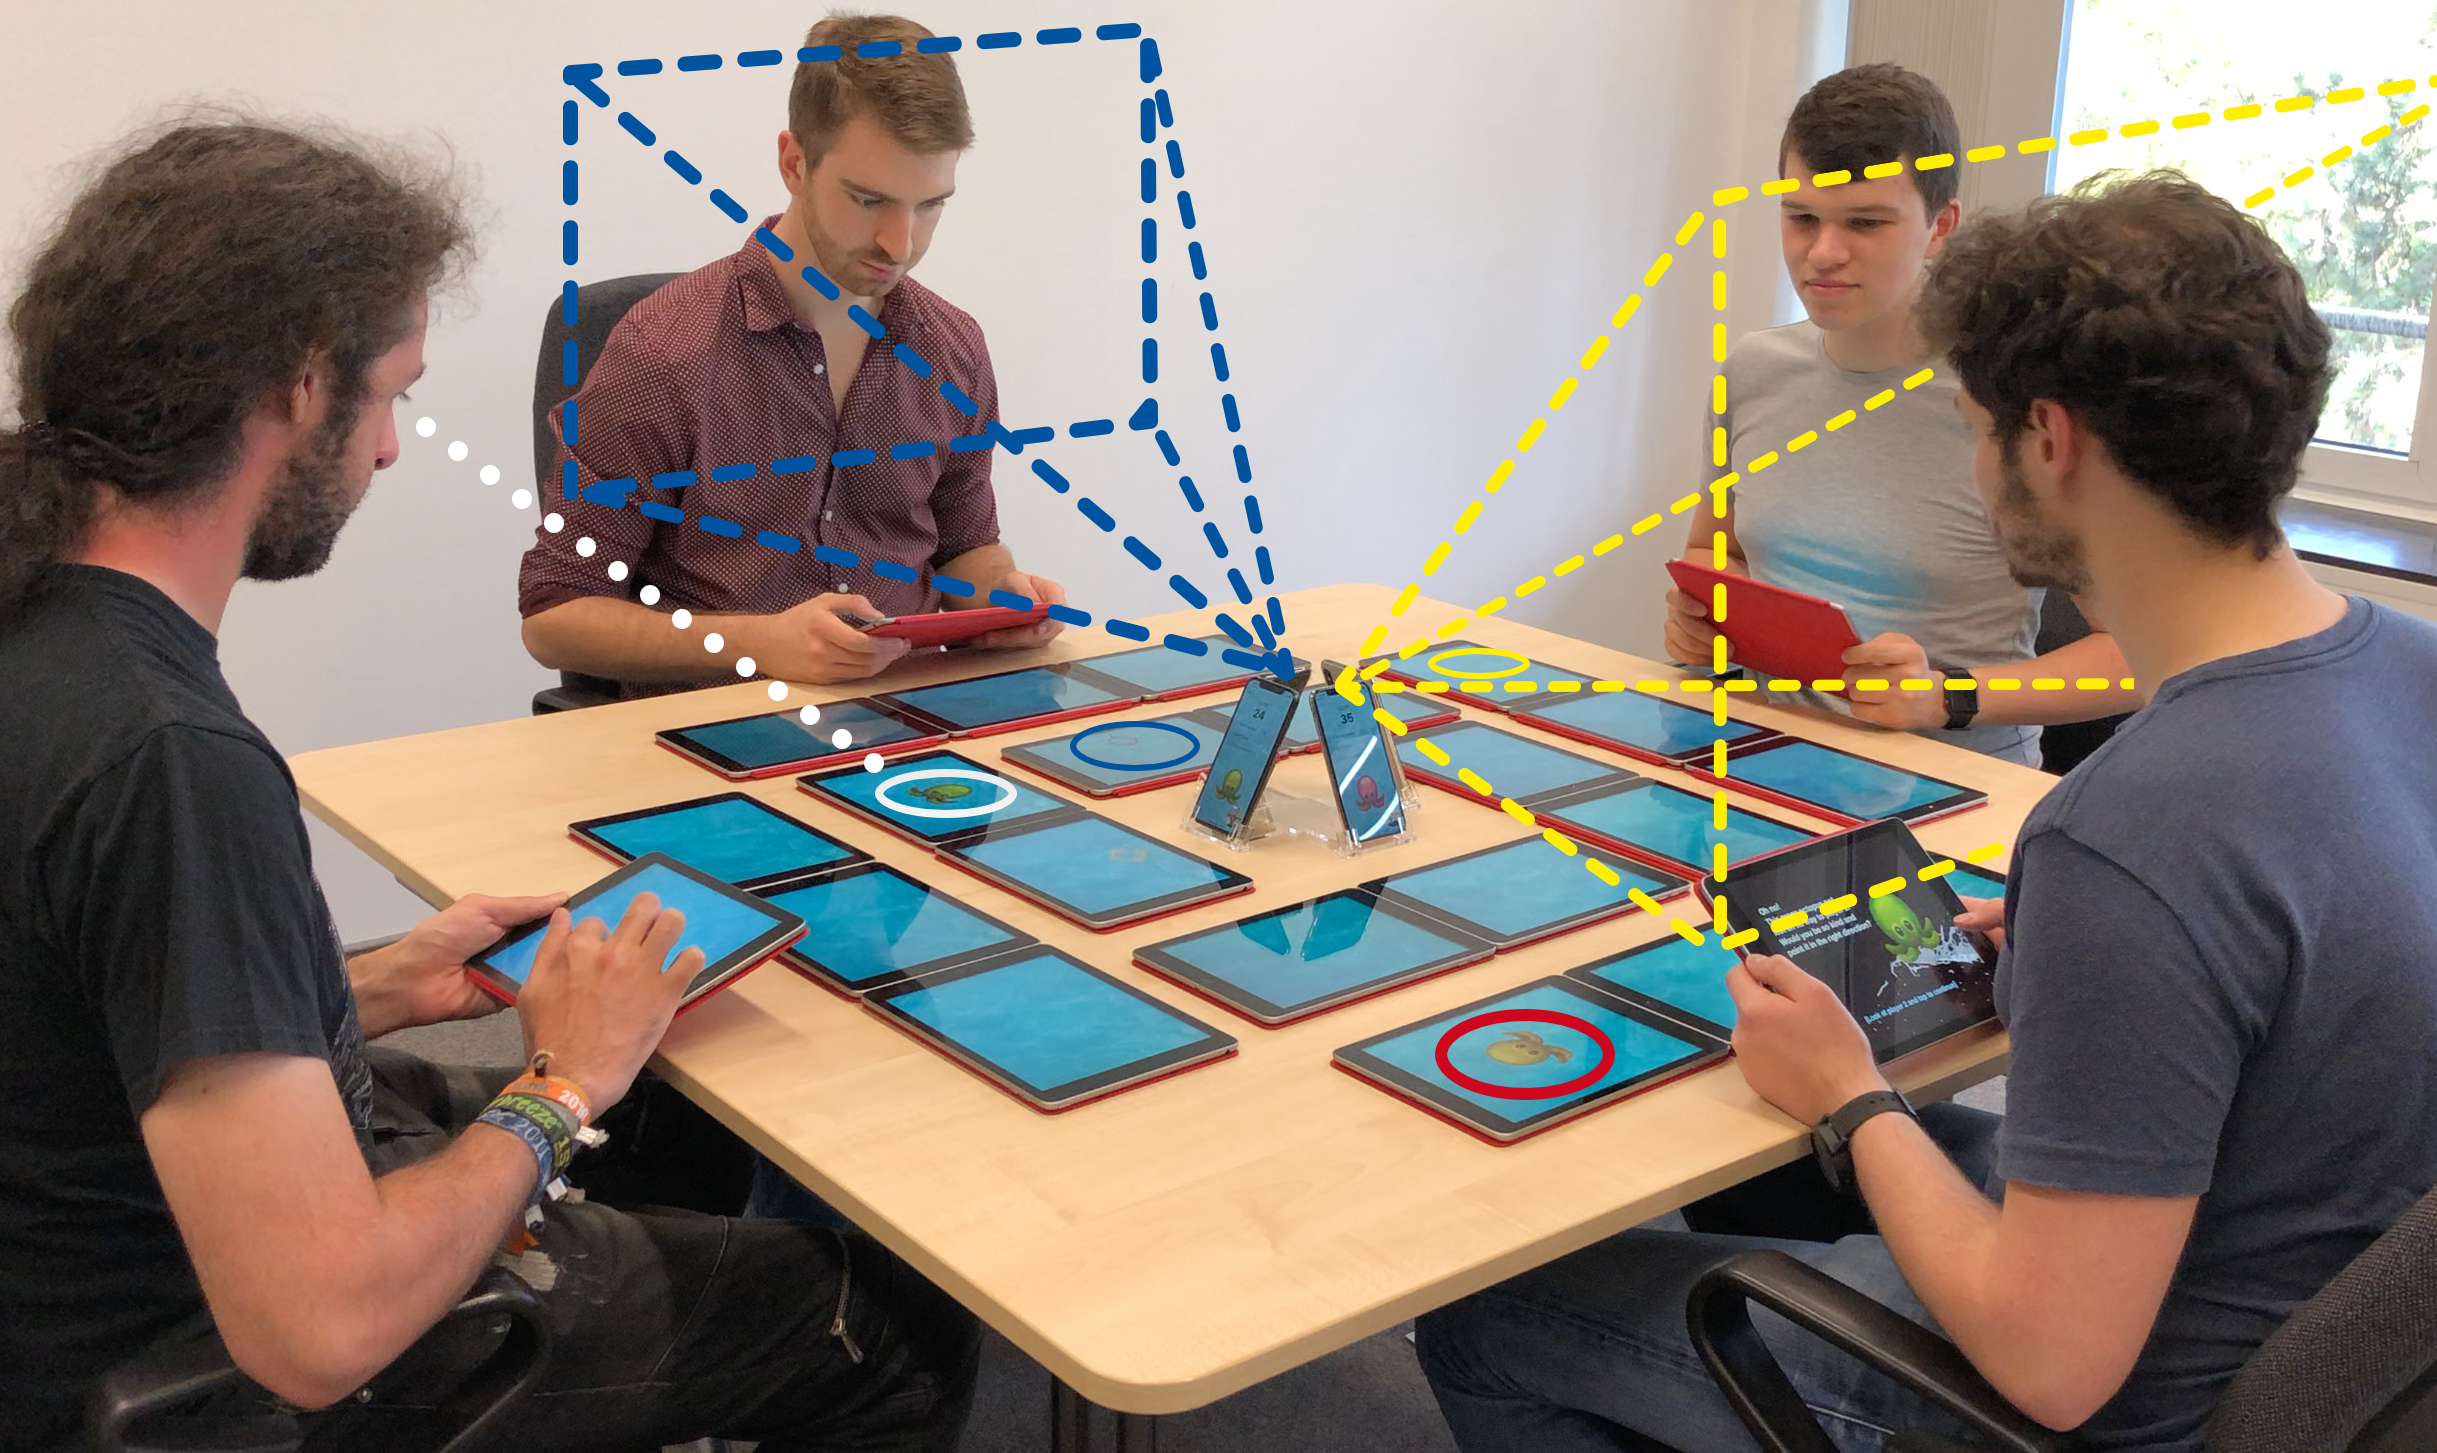 GazeConduits: Calibration-Free Cross-Device Collaboration through Gaze and Touch